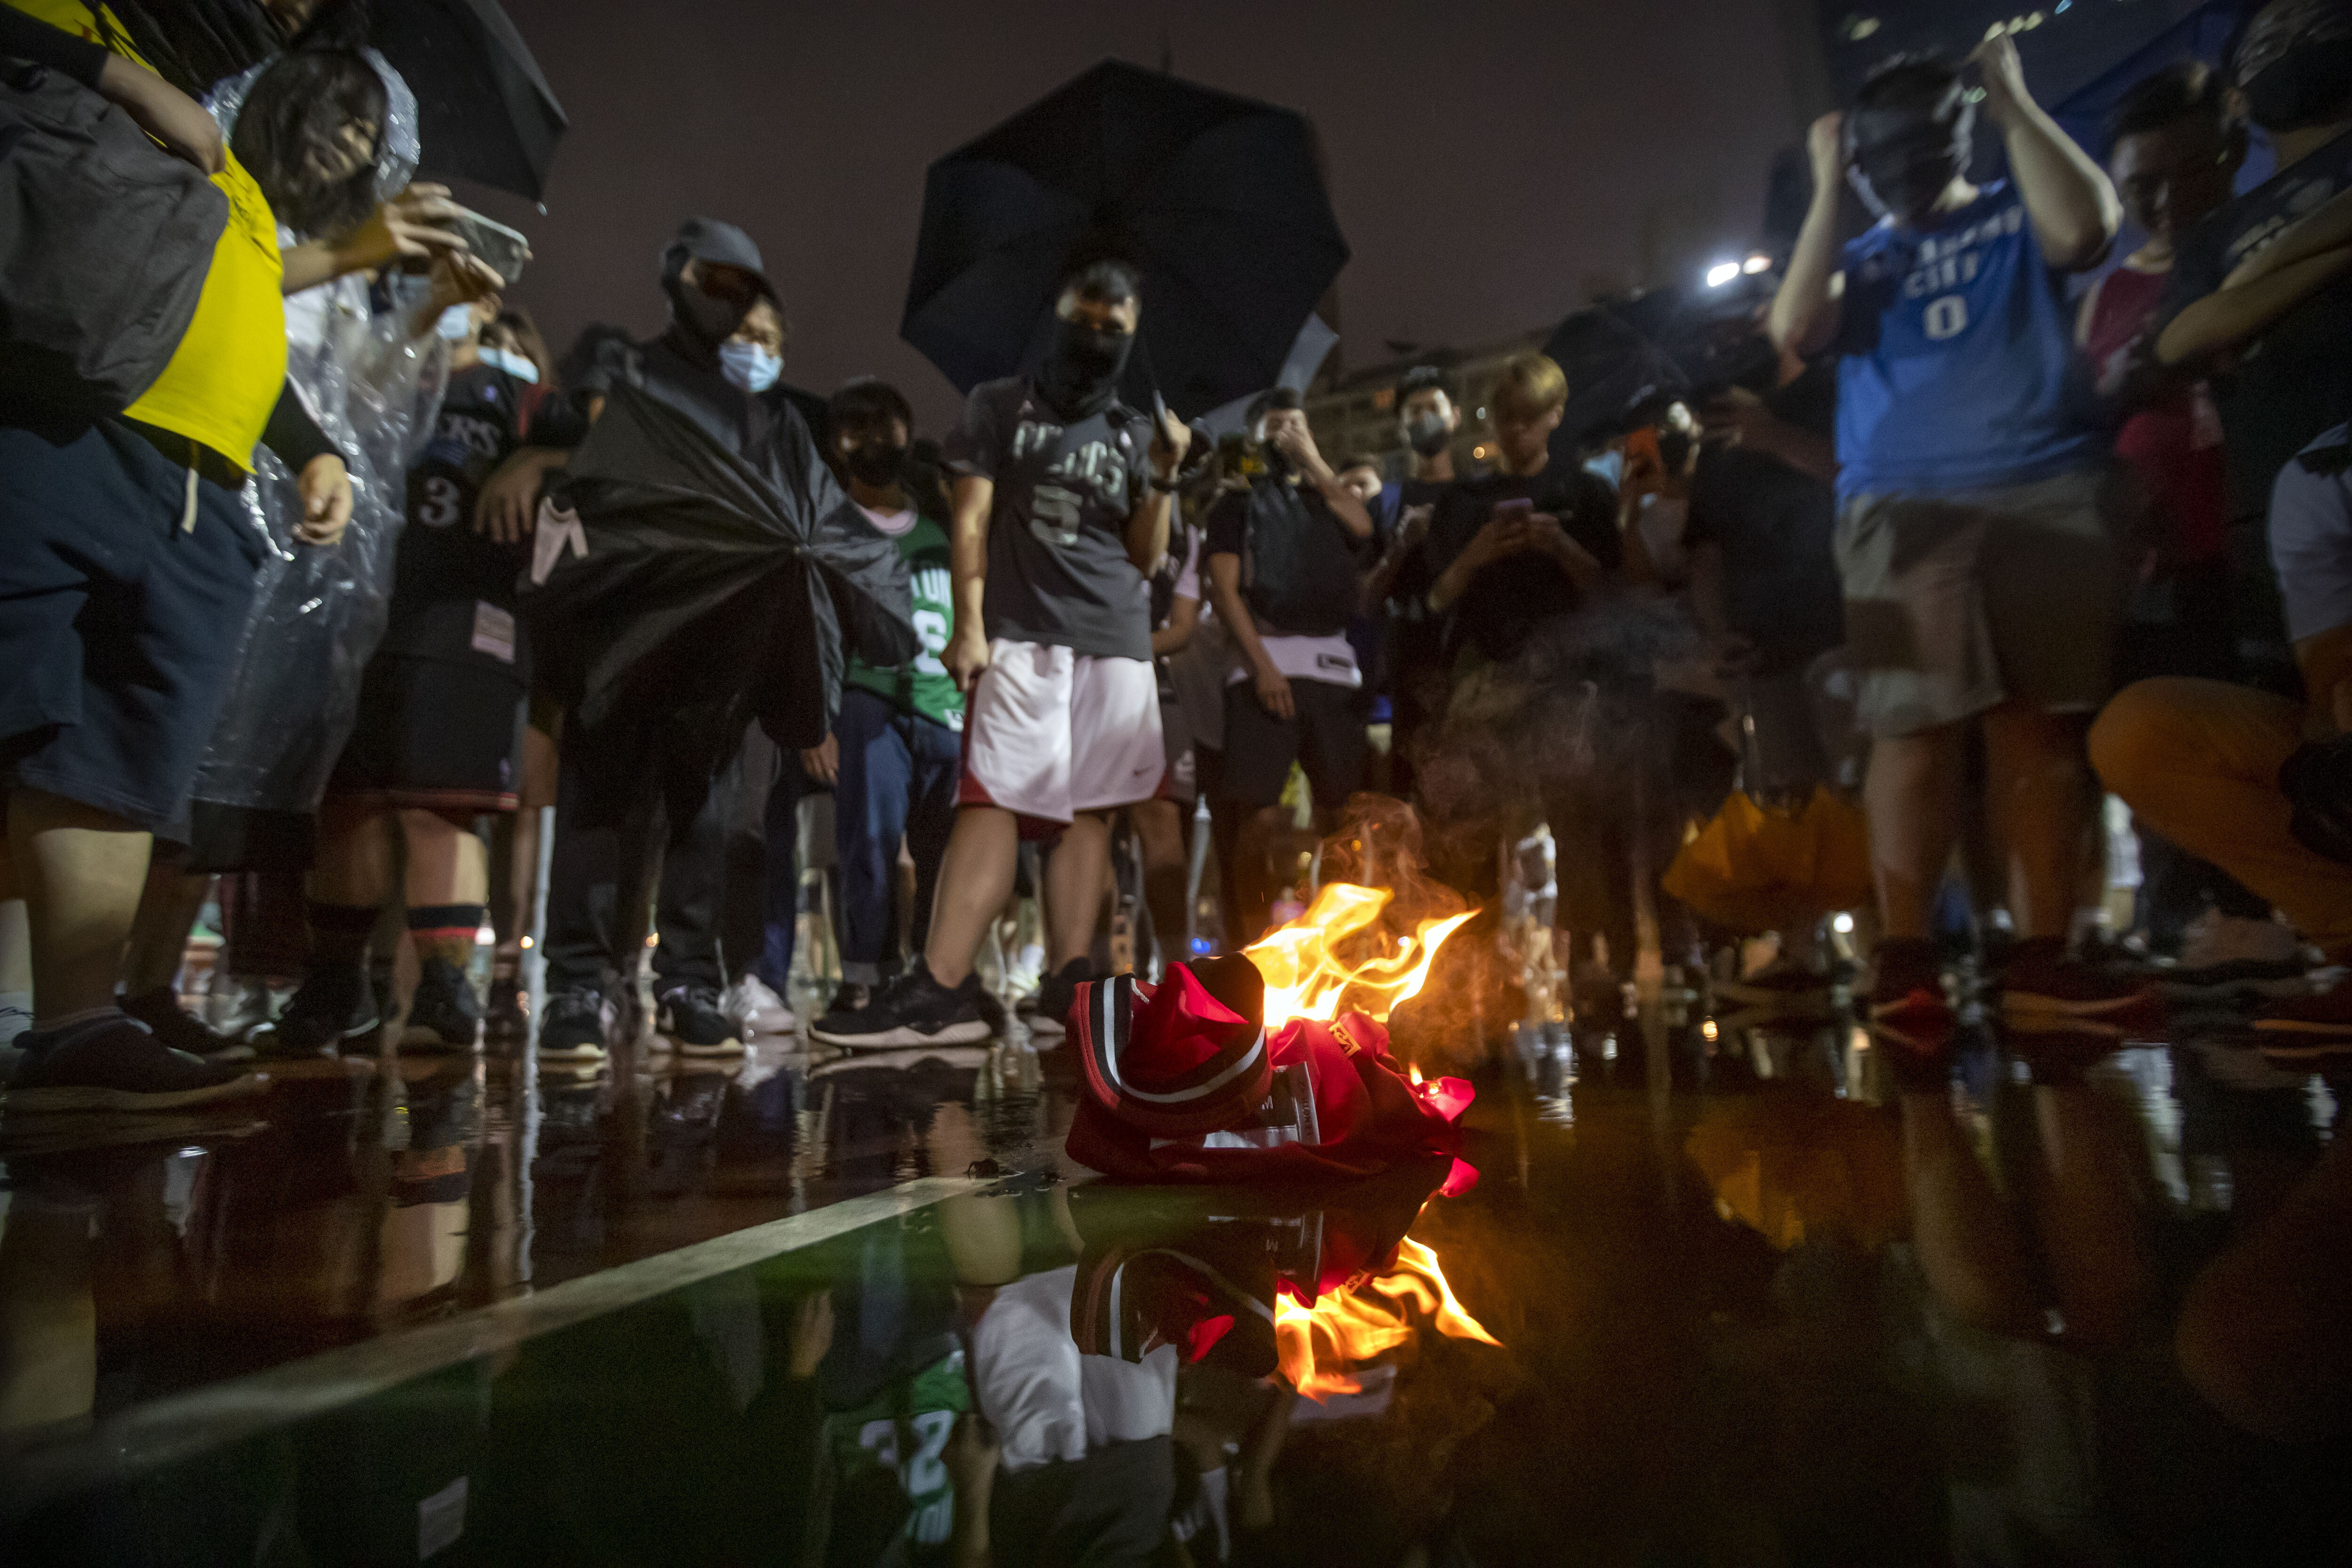 'Hong Kong lives also matter': Freedom protesters trample and burn LeBron James jerseys